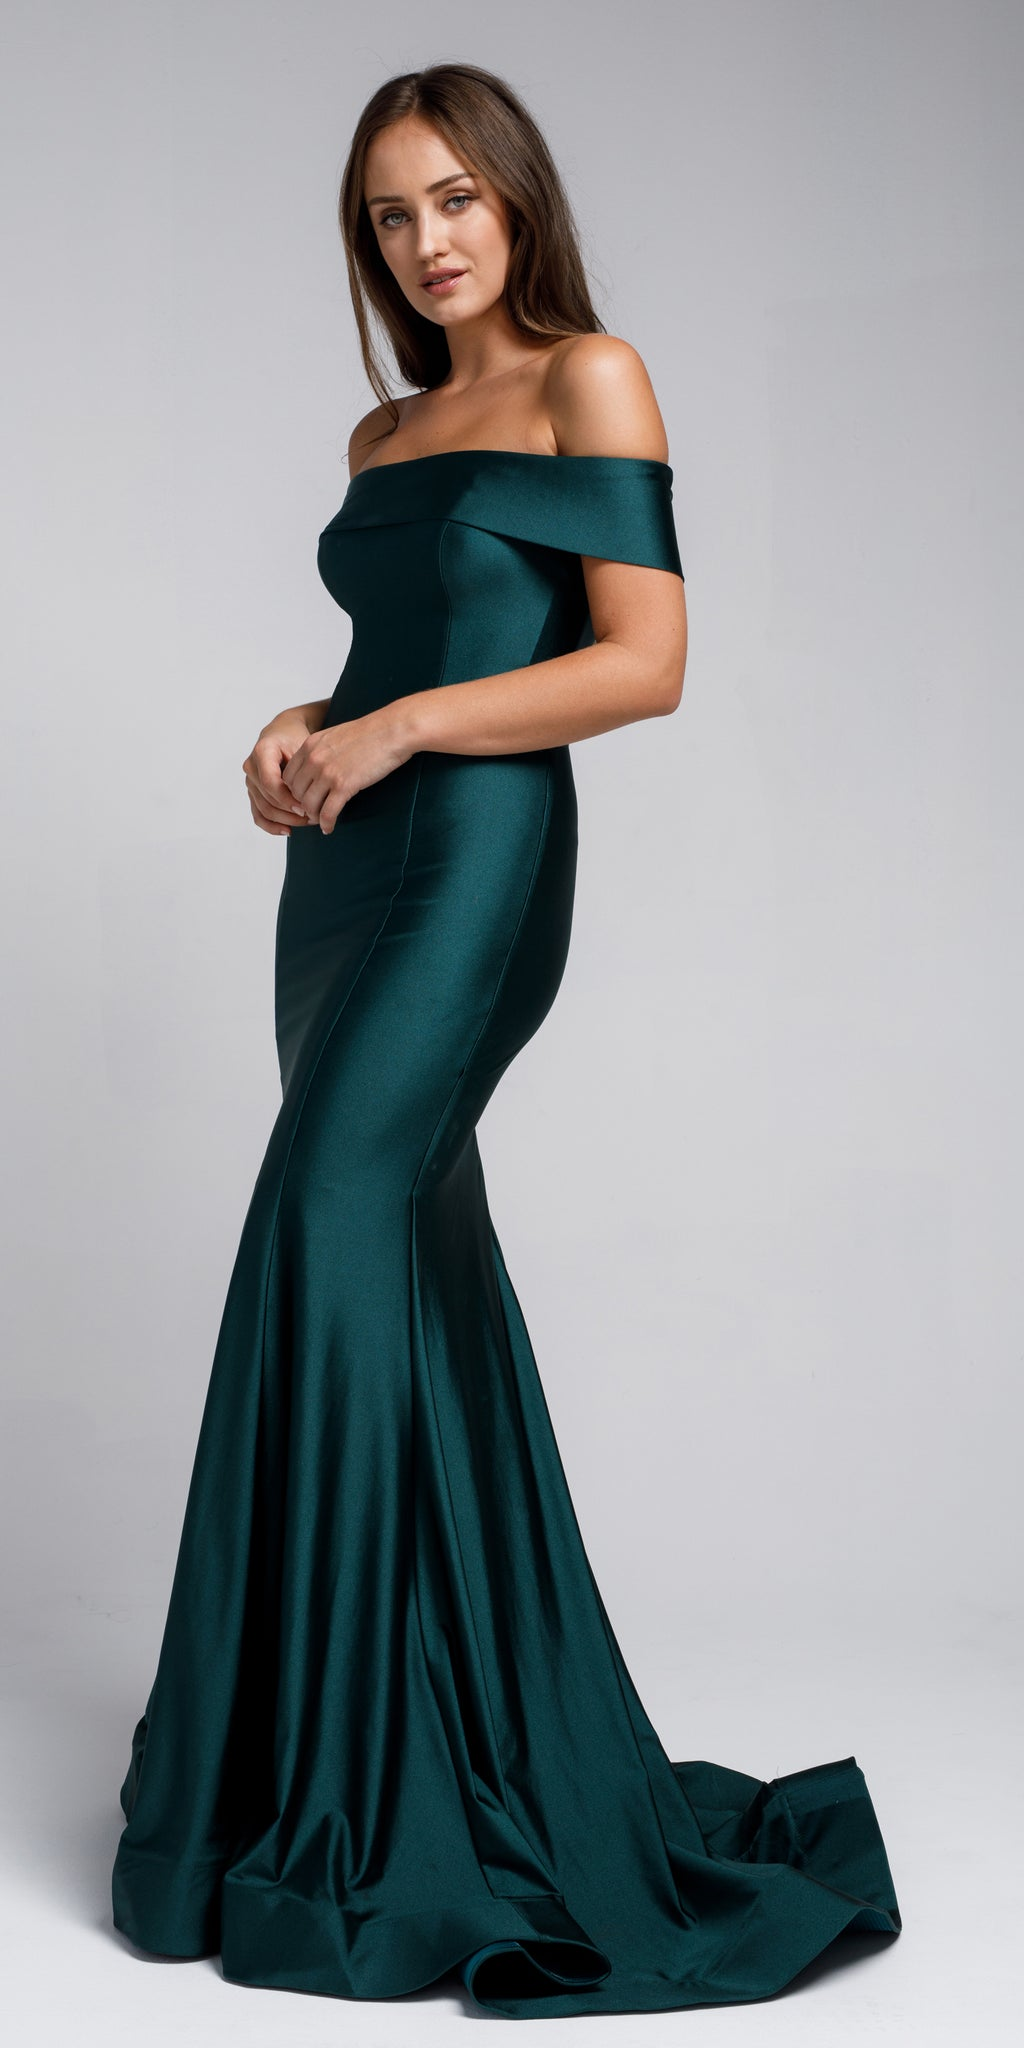 MOREWA EMERALD GREEN DRESS